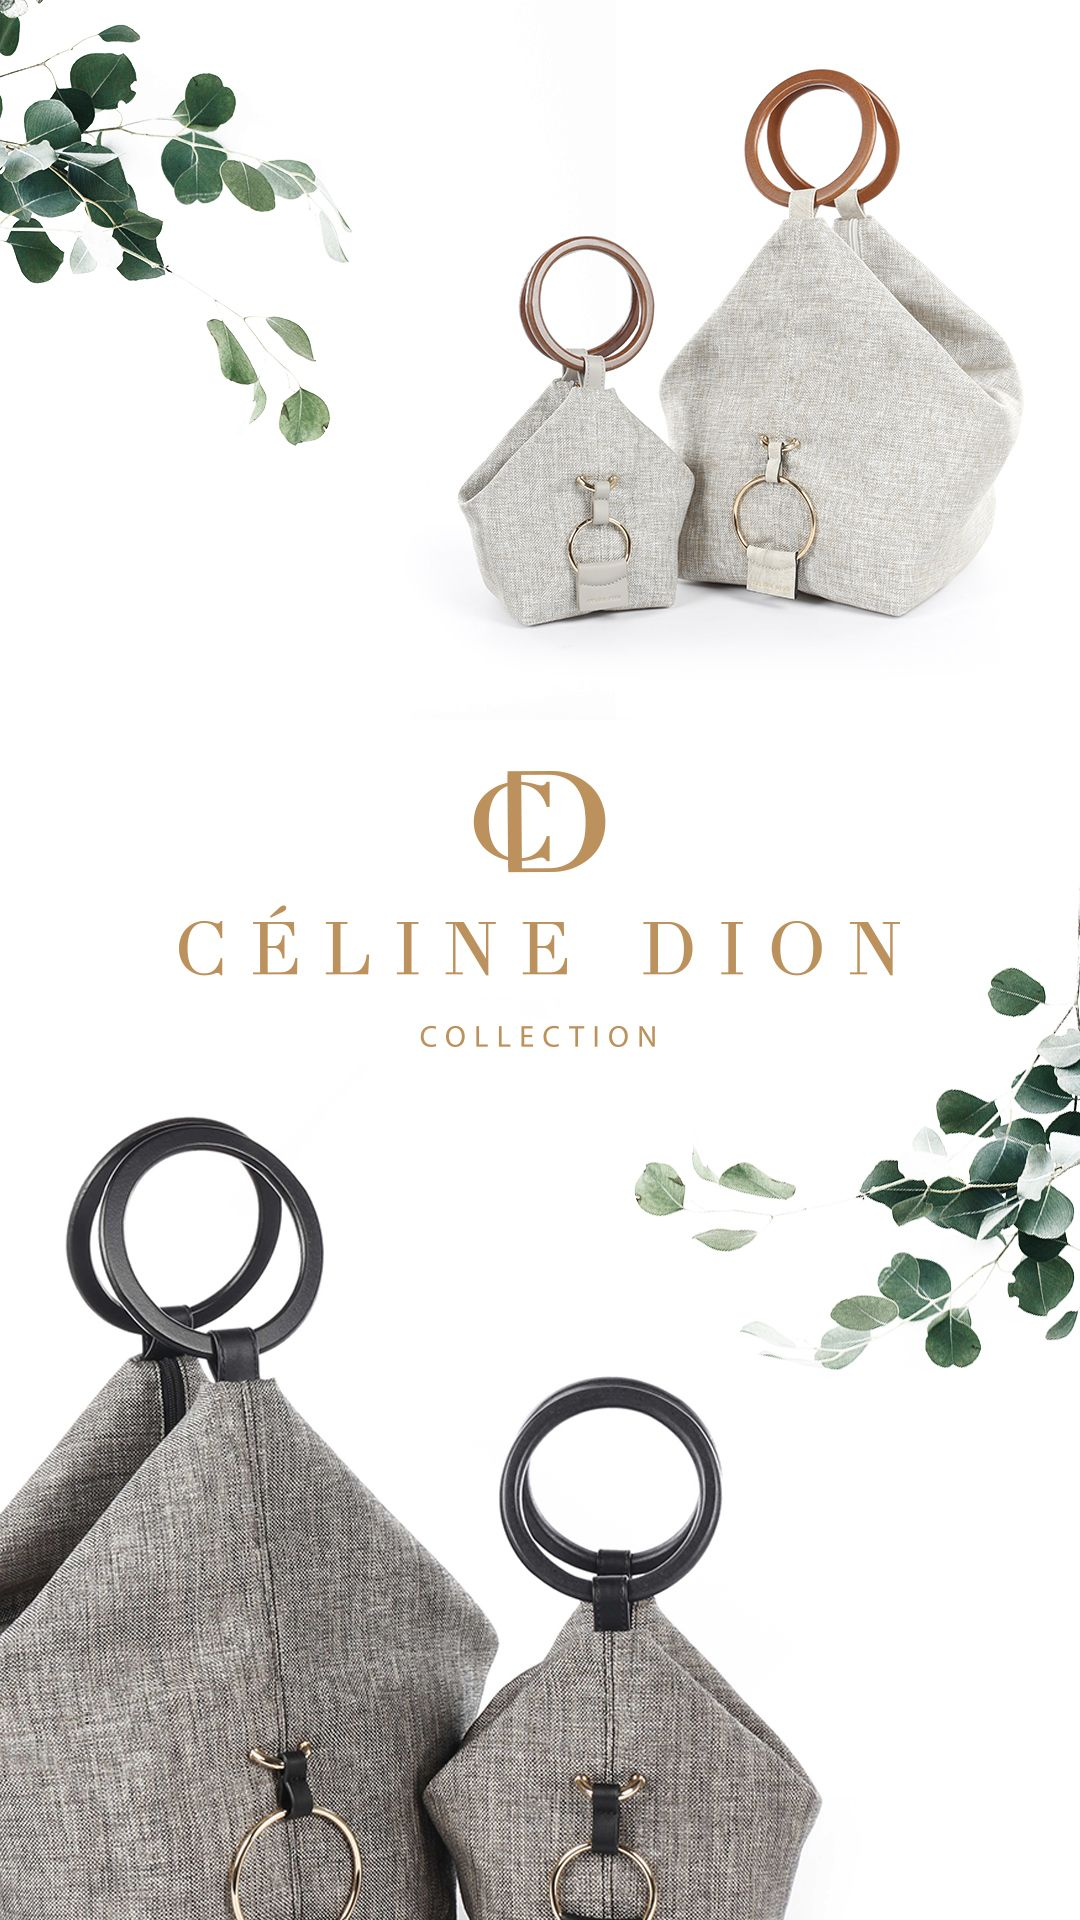 b576ae5d43c3 LIBRETTO - HANDLE BAG l Céline Dion Collection l Large triangular shaped  canvas bag Round wooden